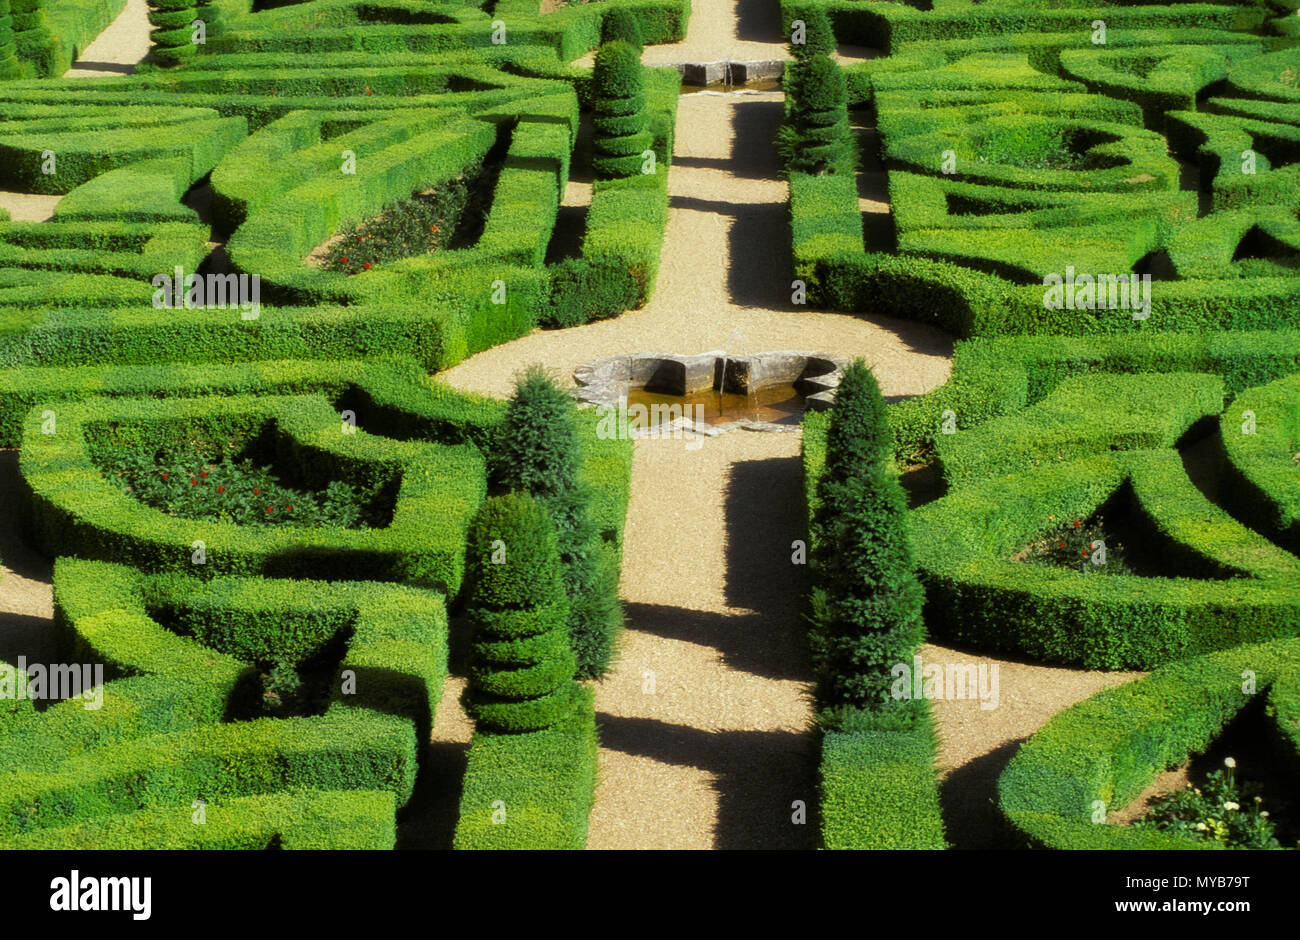 Boxwood Parterre Garden Stock Photos & Boxwood Parterre Garden Stock on